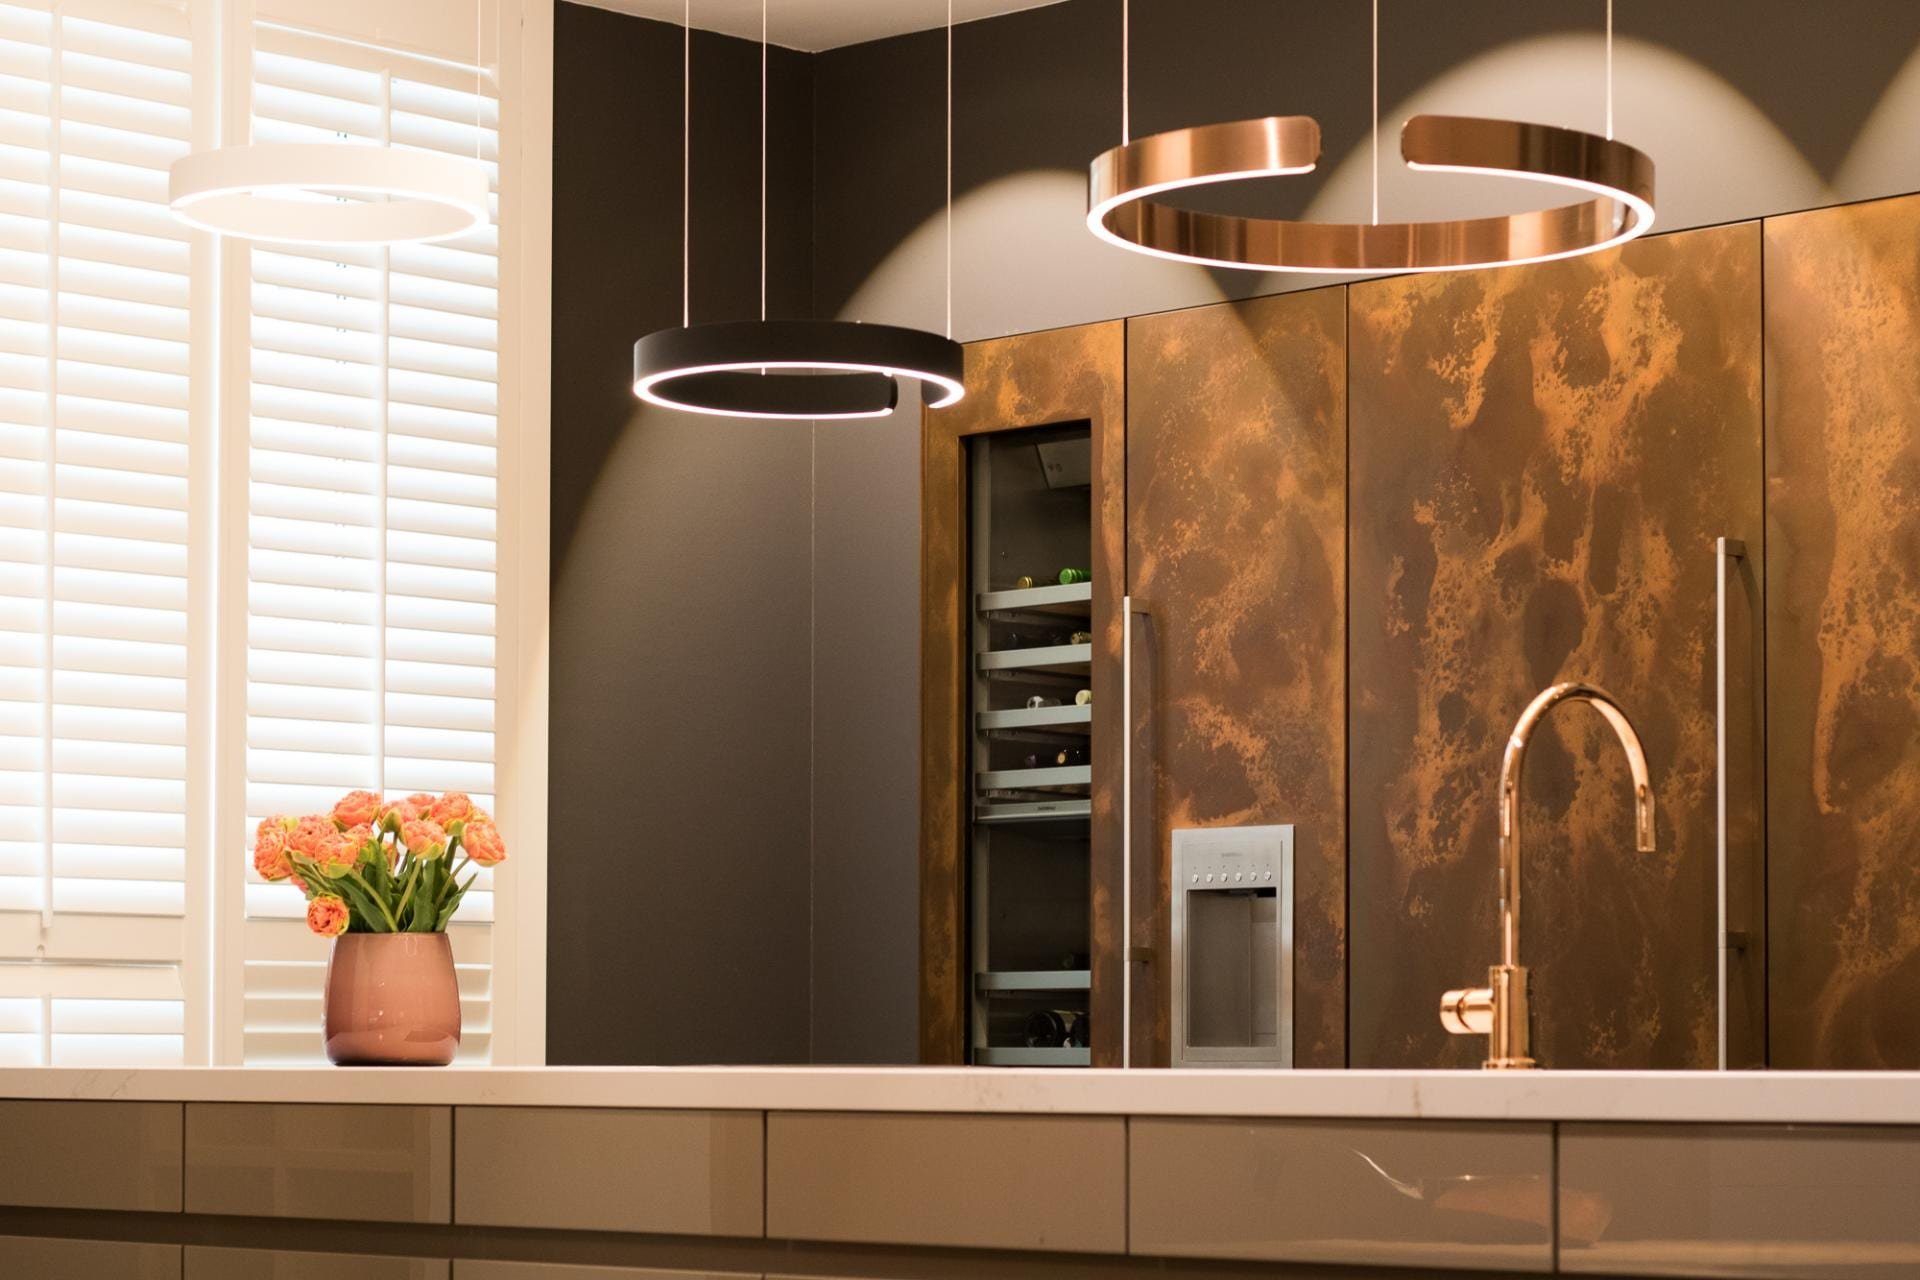 what's trending in kitchen lighting - asco lights